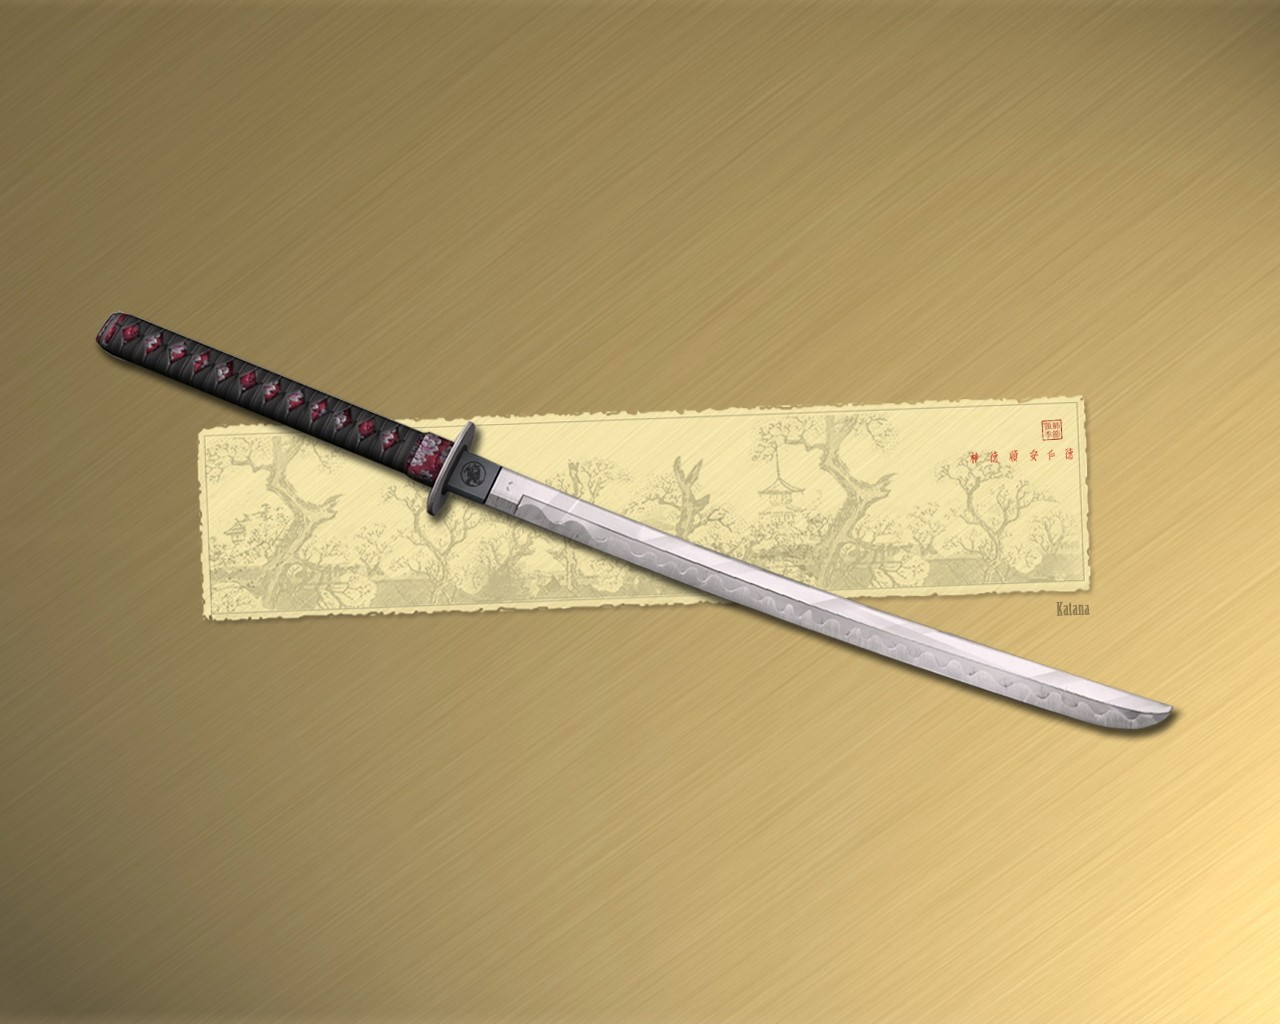 Awesome Hd Wallpaper Collection Ninja Sword Wallpaper By Katana